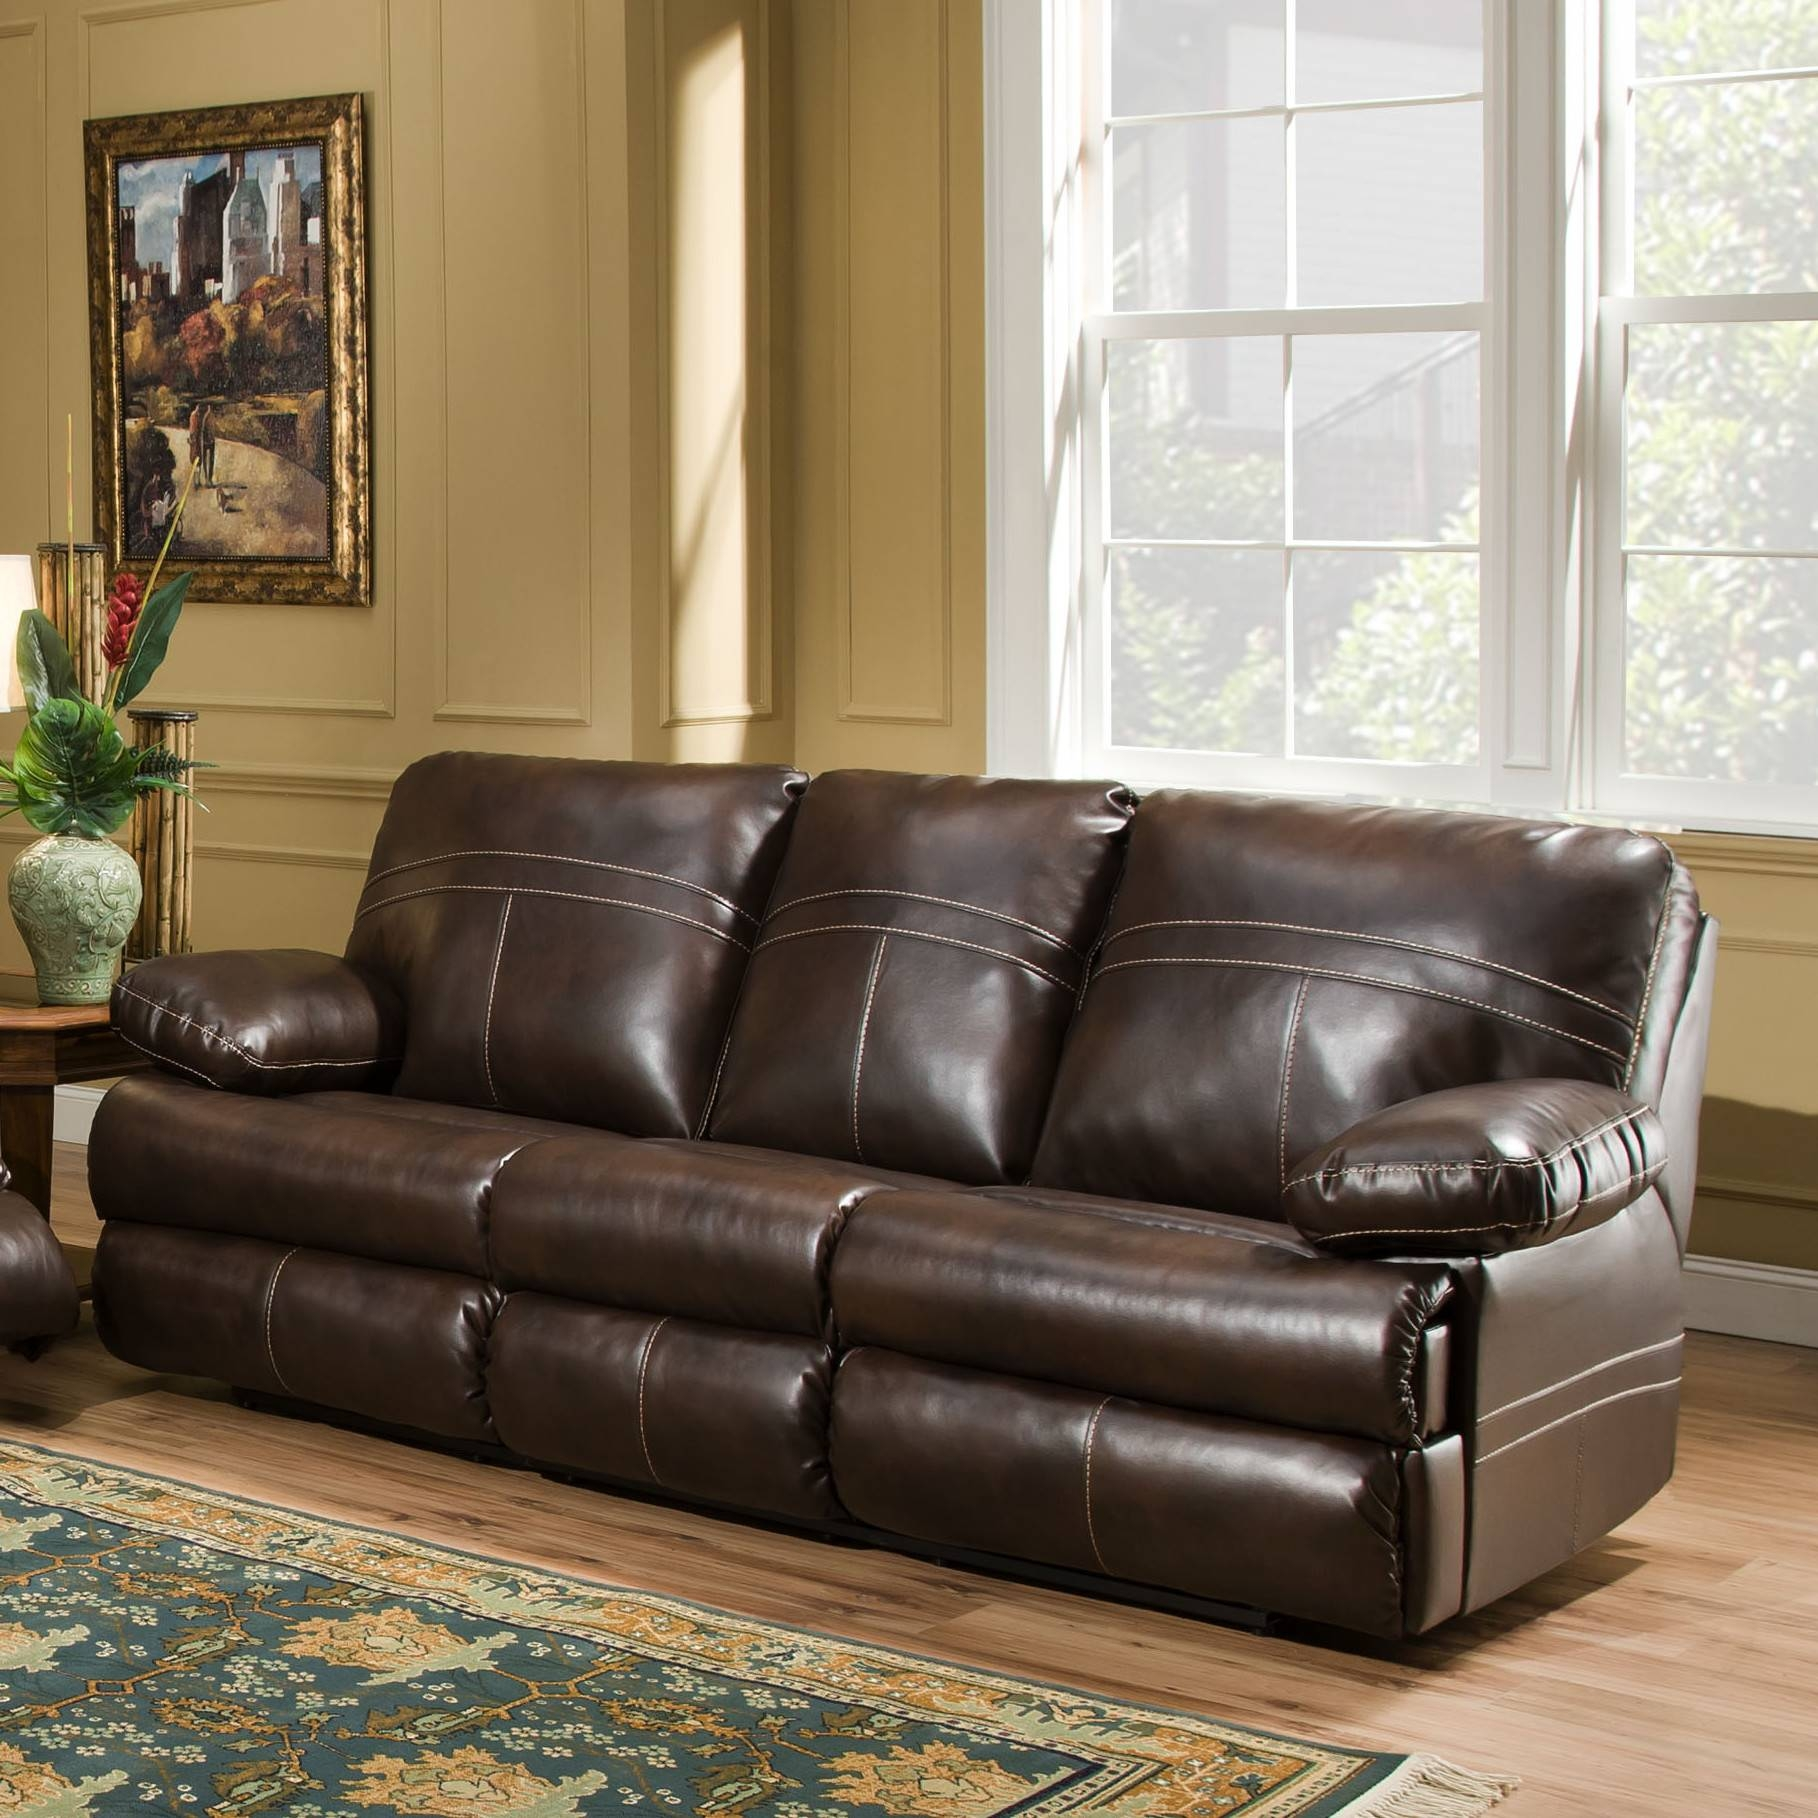 Simmons Miracle Brown Leather Sectional | Furniture And Interior for Simmons Sofas And Loveseats (Image 13 of 15)